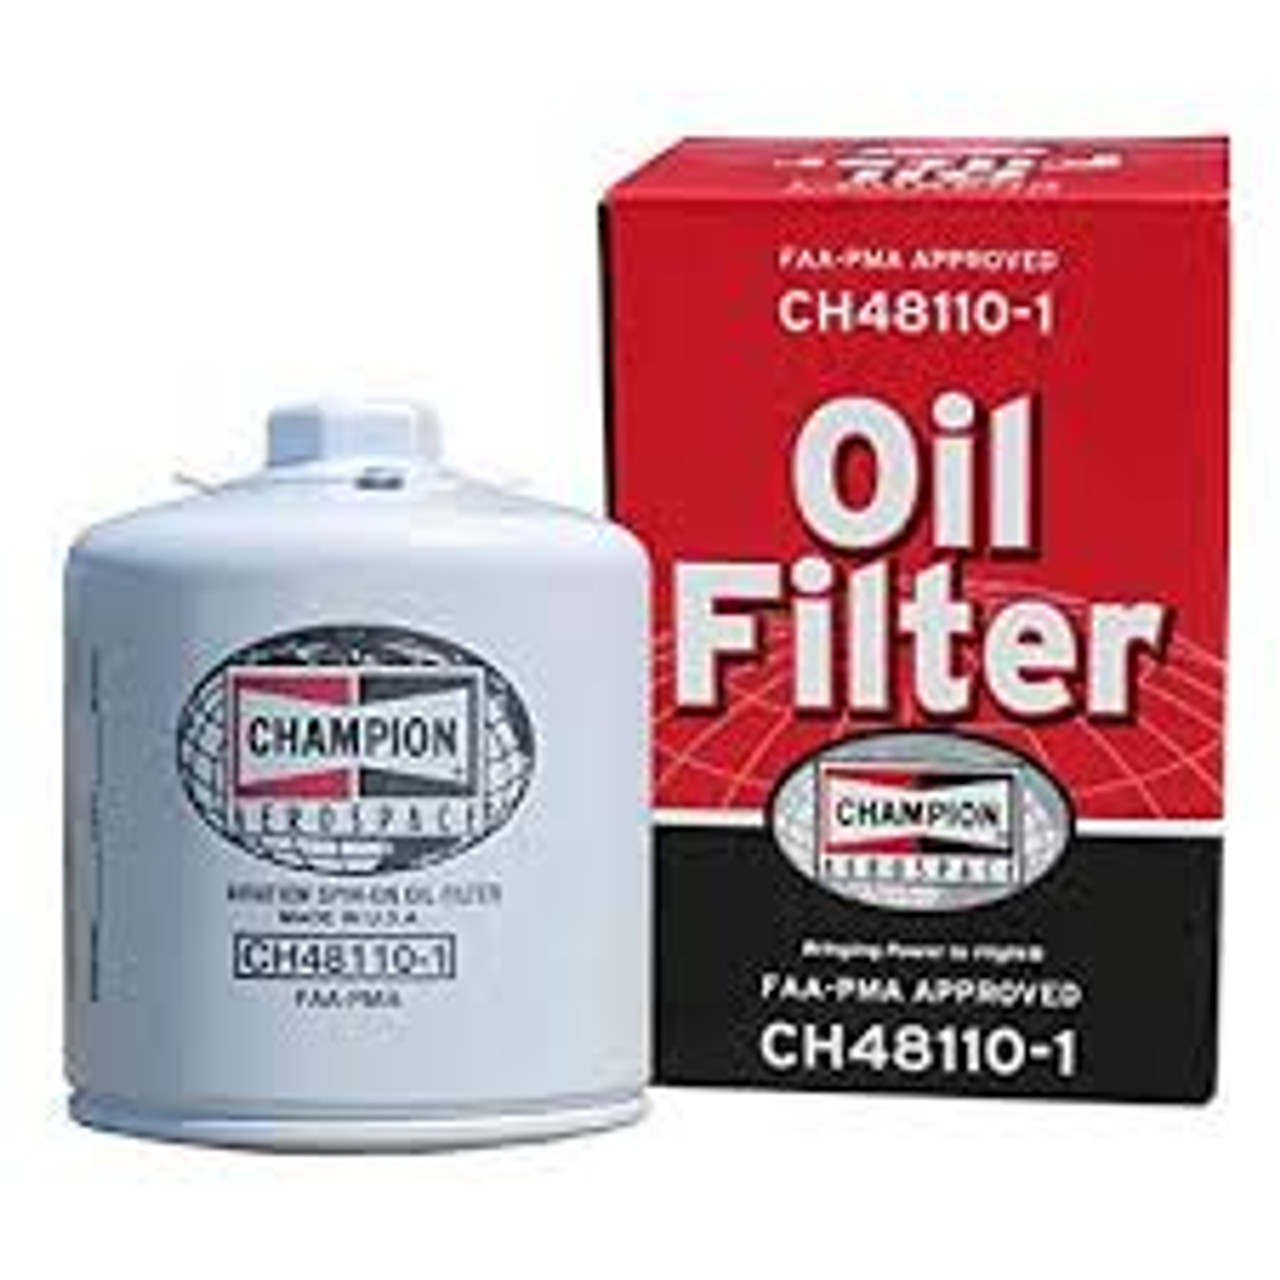 CH48110-1 Champion Oil Filter